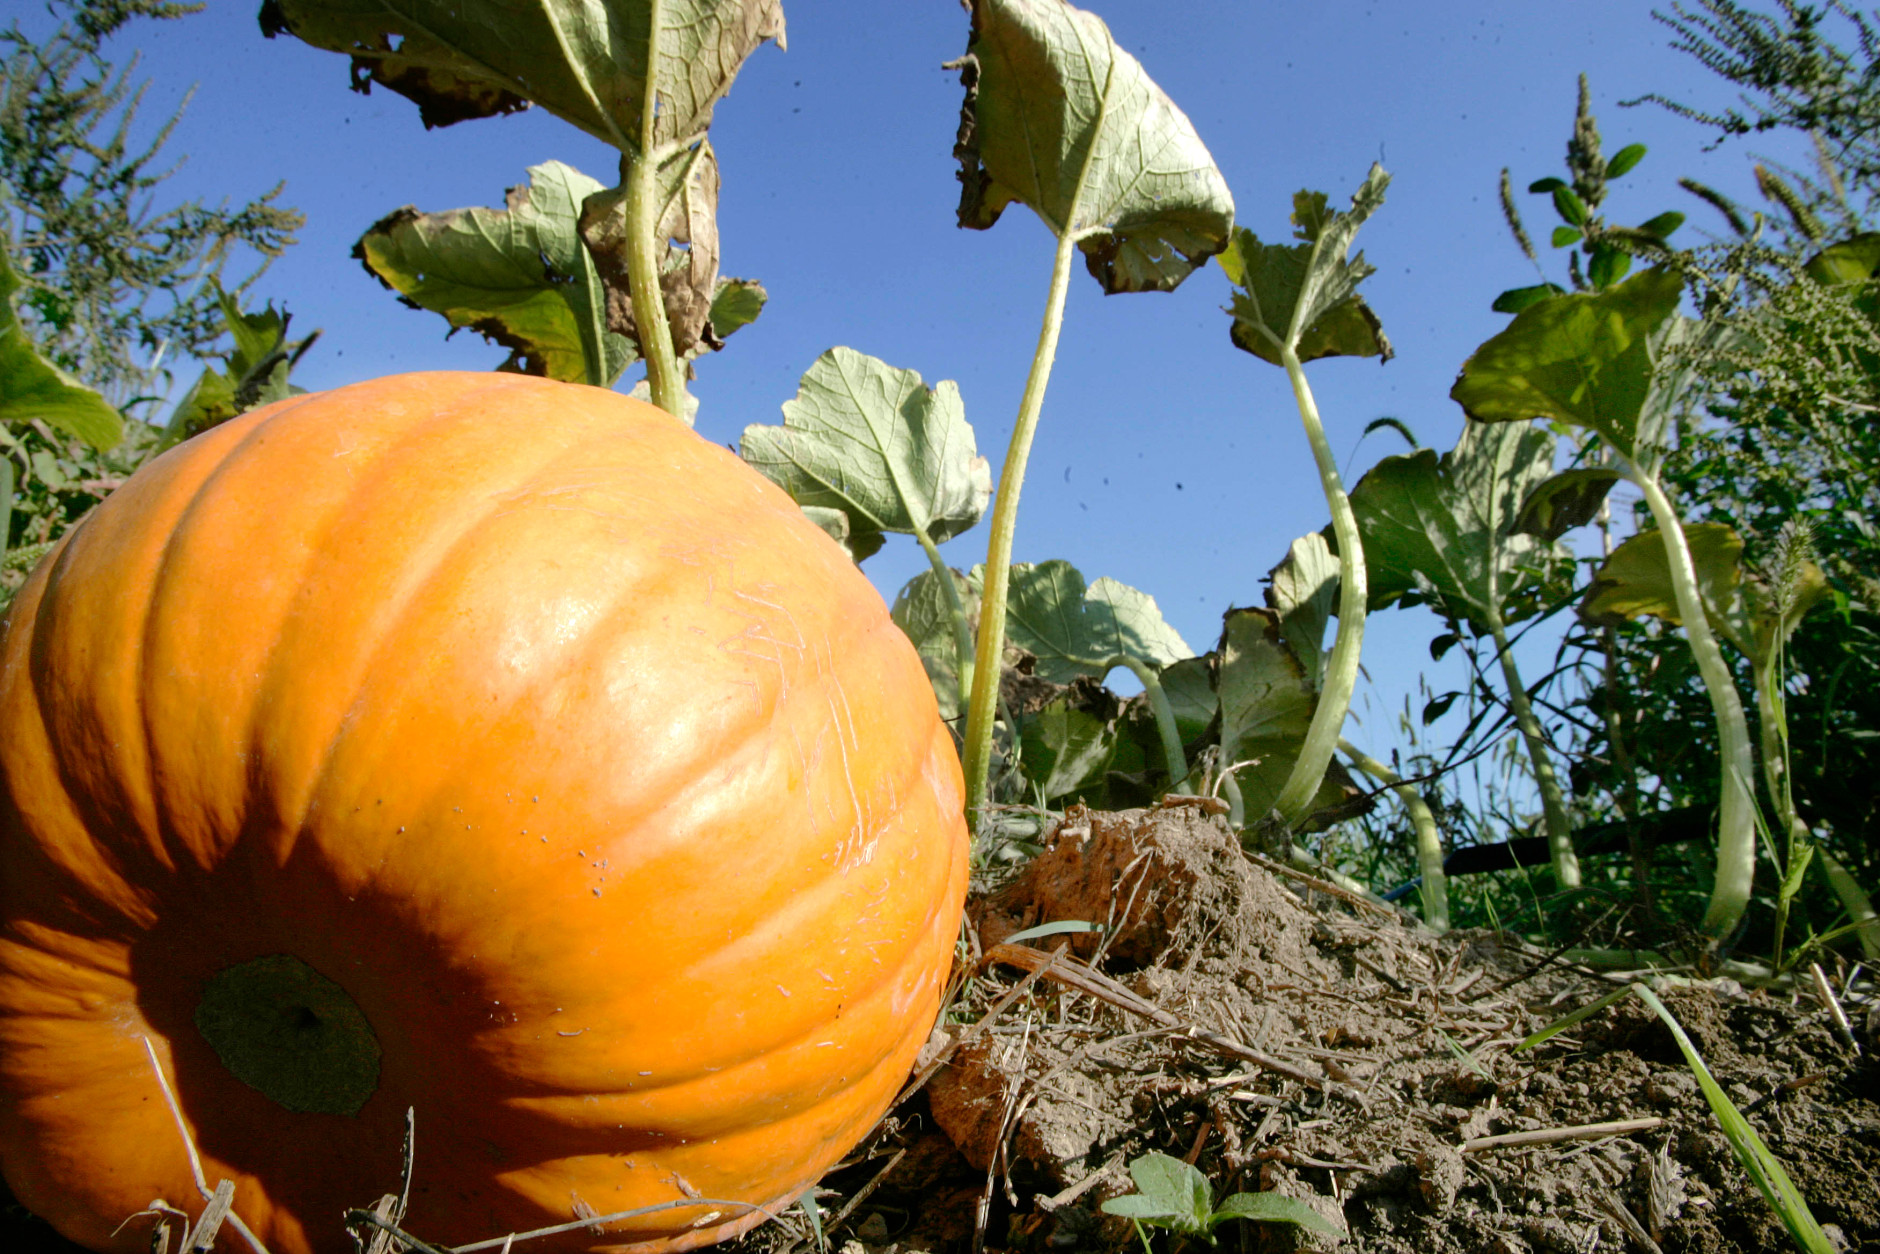 A pumpkin is seen on the vine in a patch at the Soergel farm in Wexford, Pa. Tuesday, Sept. 23, 2008. (AP Photo/Keith Srakocic)